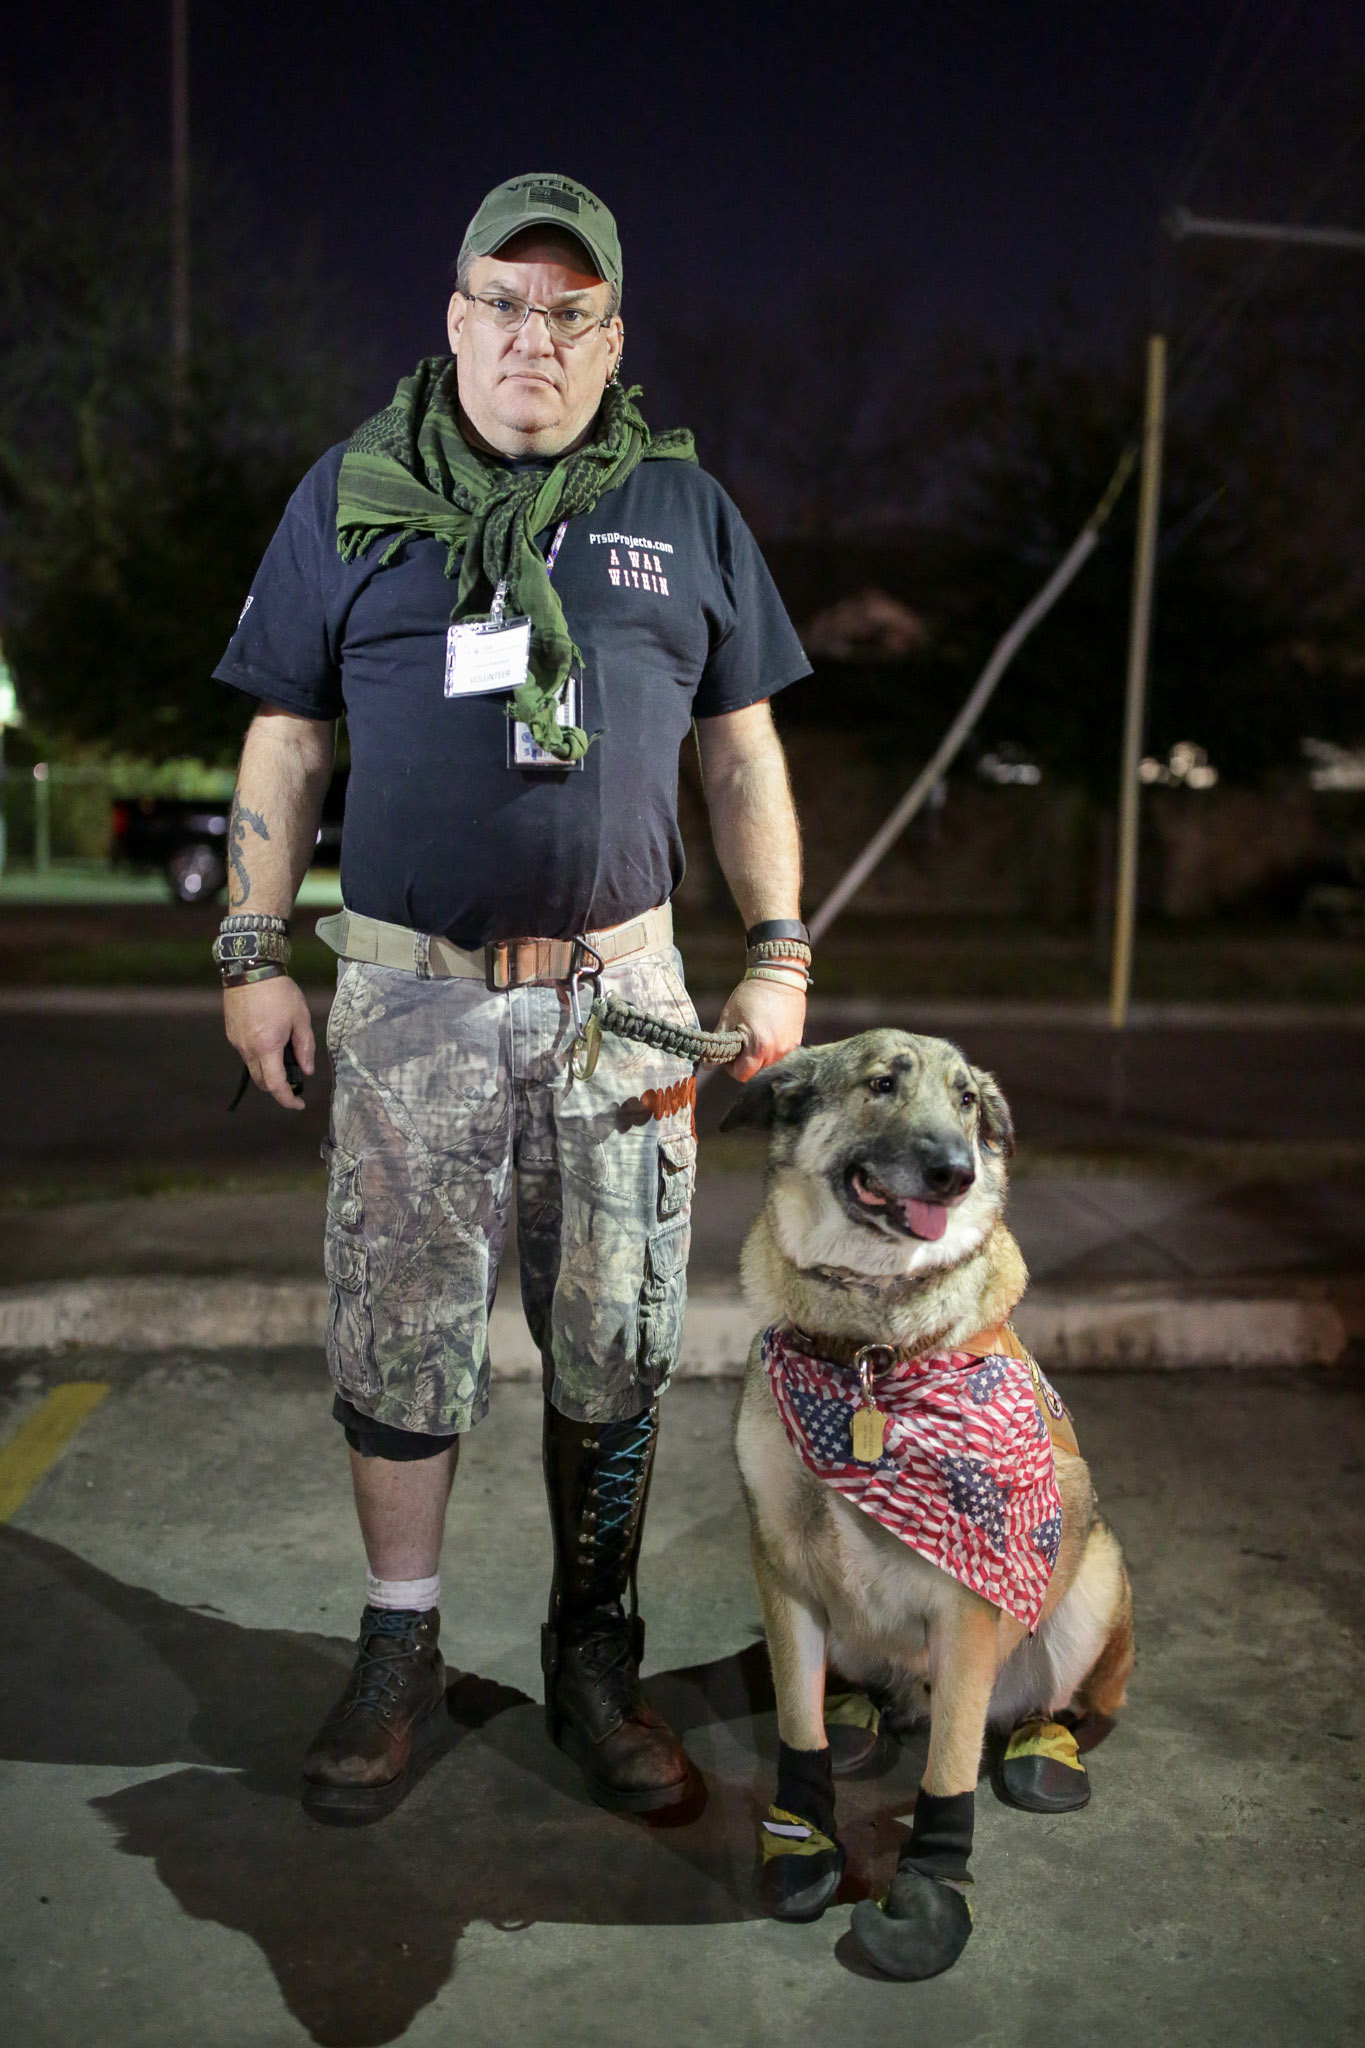 Tommy Riester and his service dog Cooper stand for a portrait near a homeless hot spot. Tommy has overcome homelessness and has been off the street for just over a year.